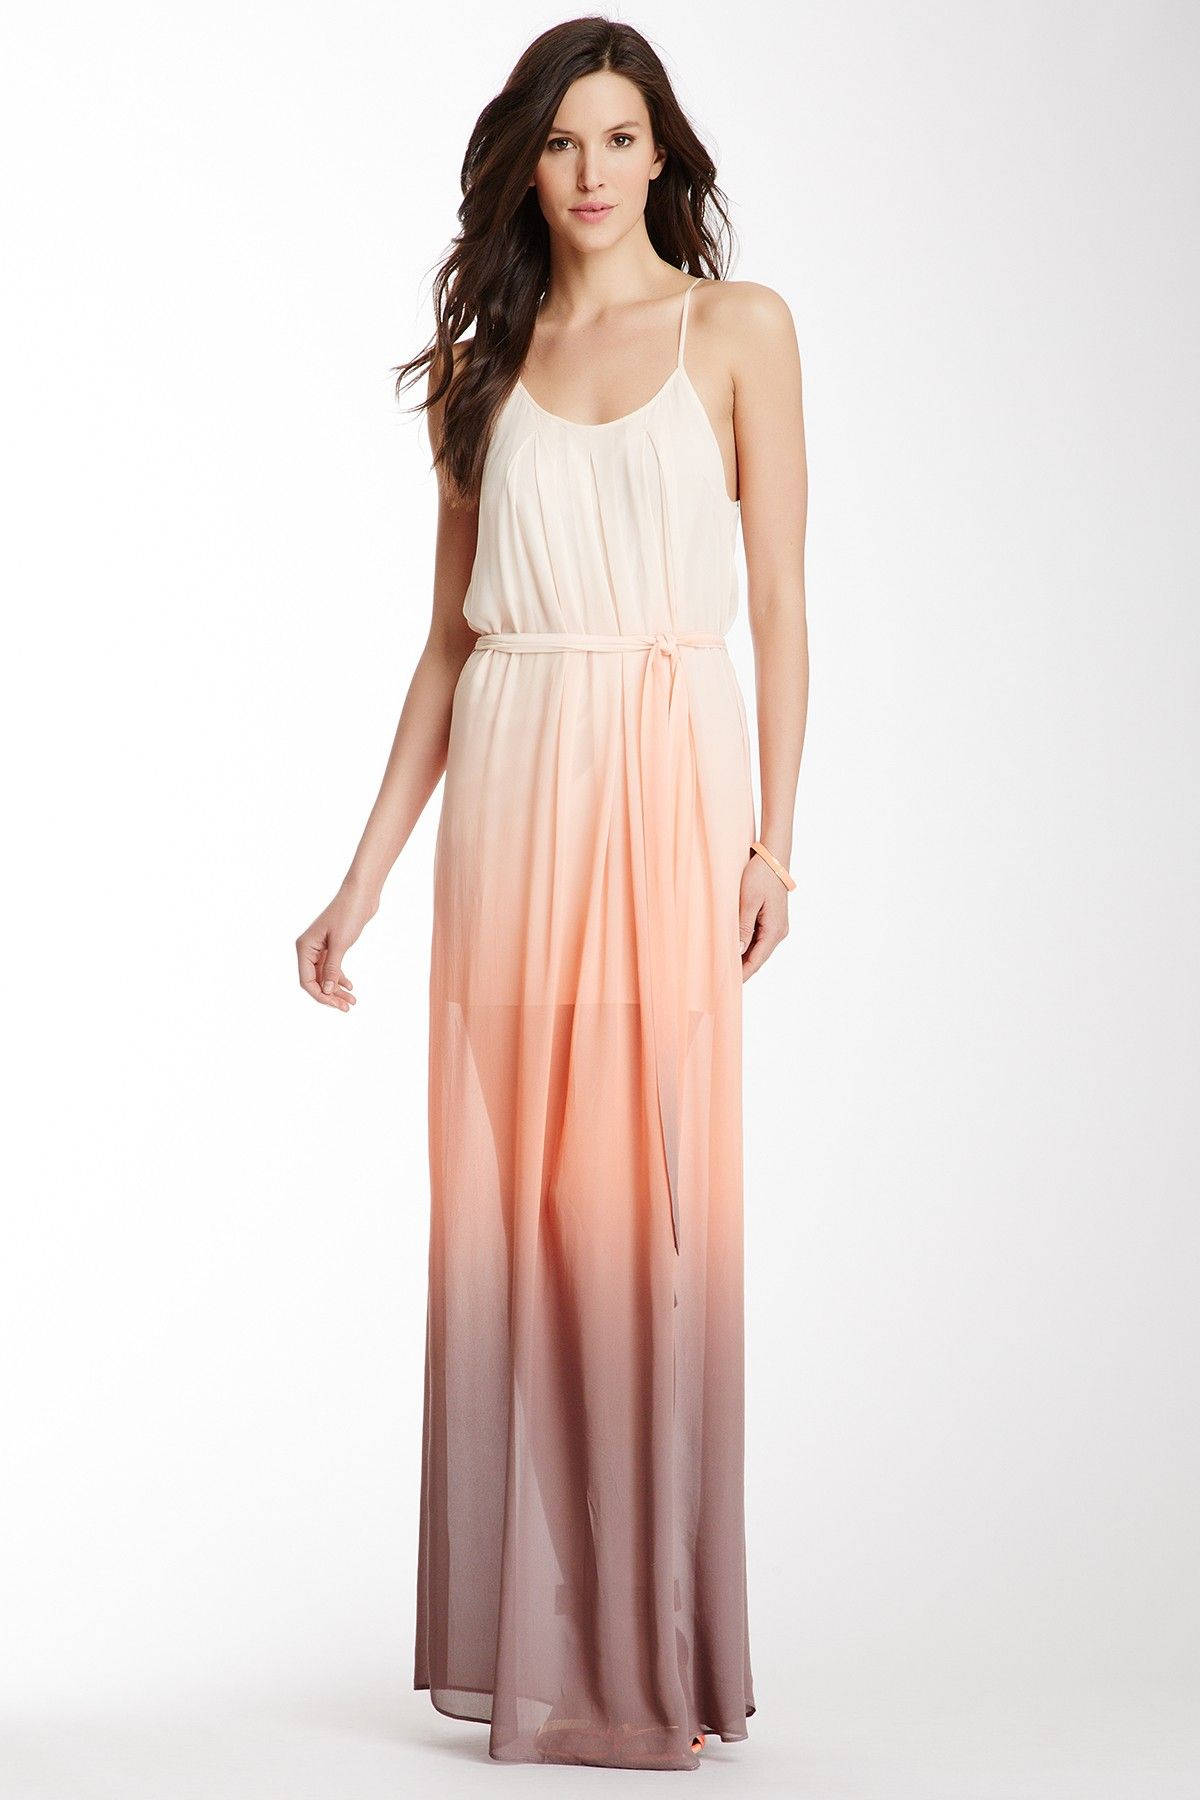 Long sheer chiffon dresses like this are on my summer wish for Summer maxi dress for wedding